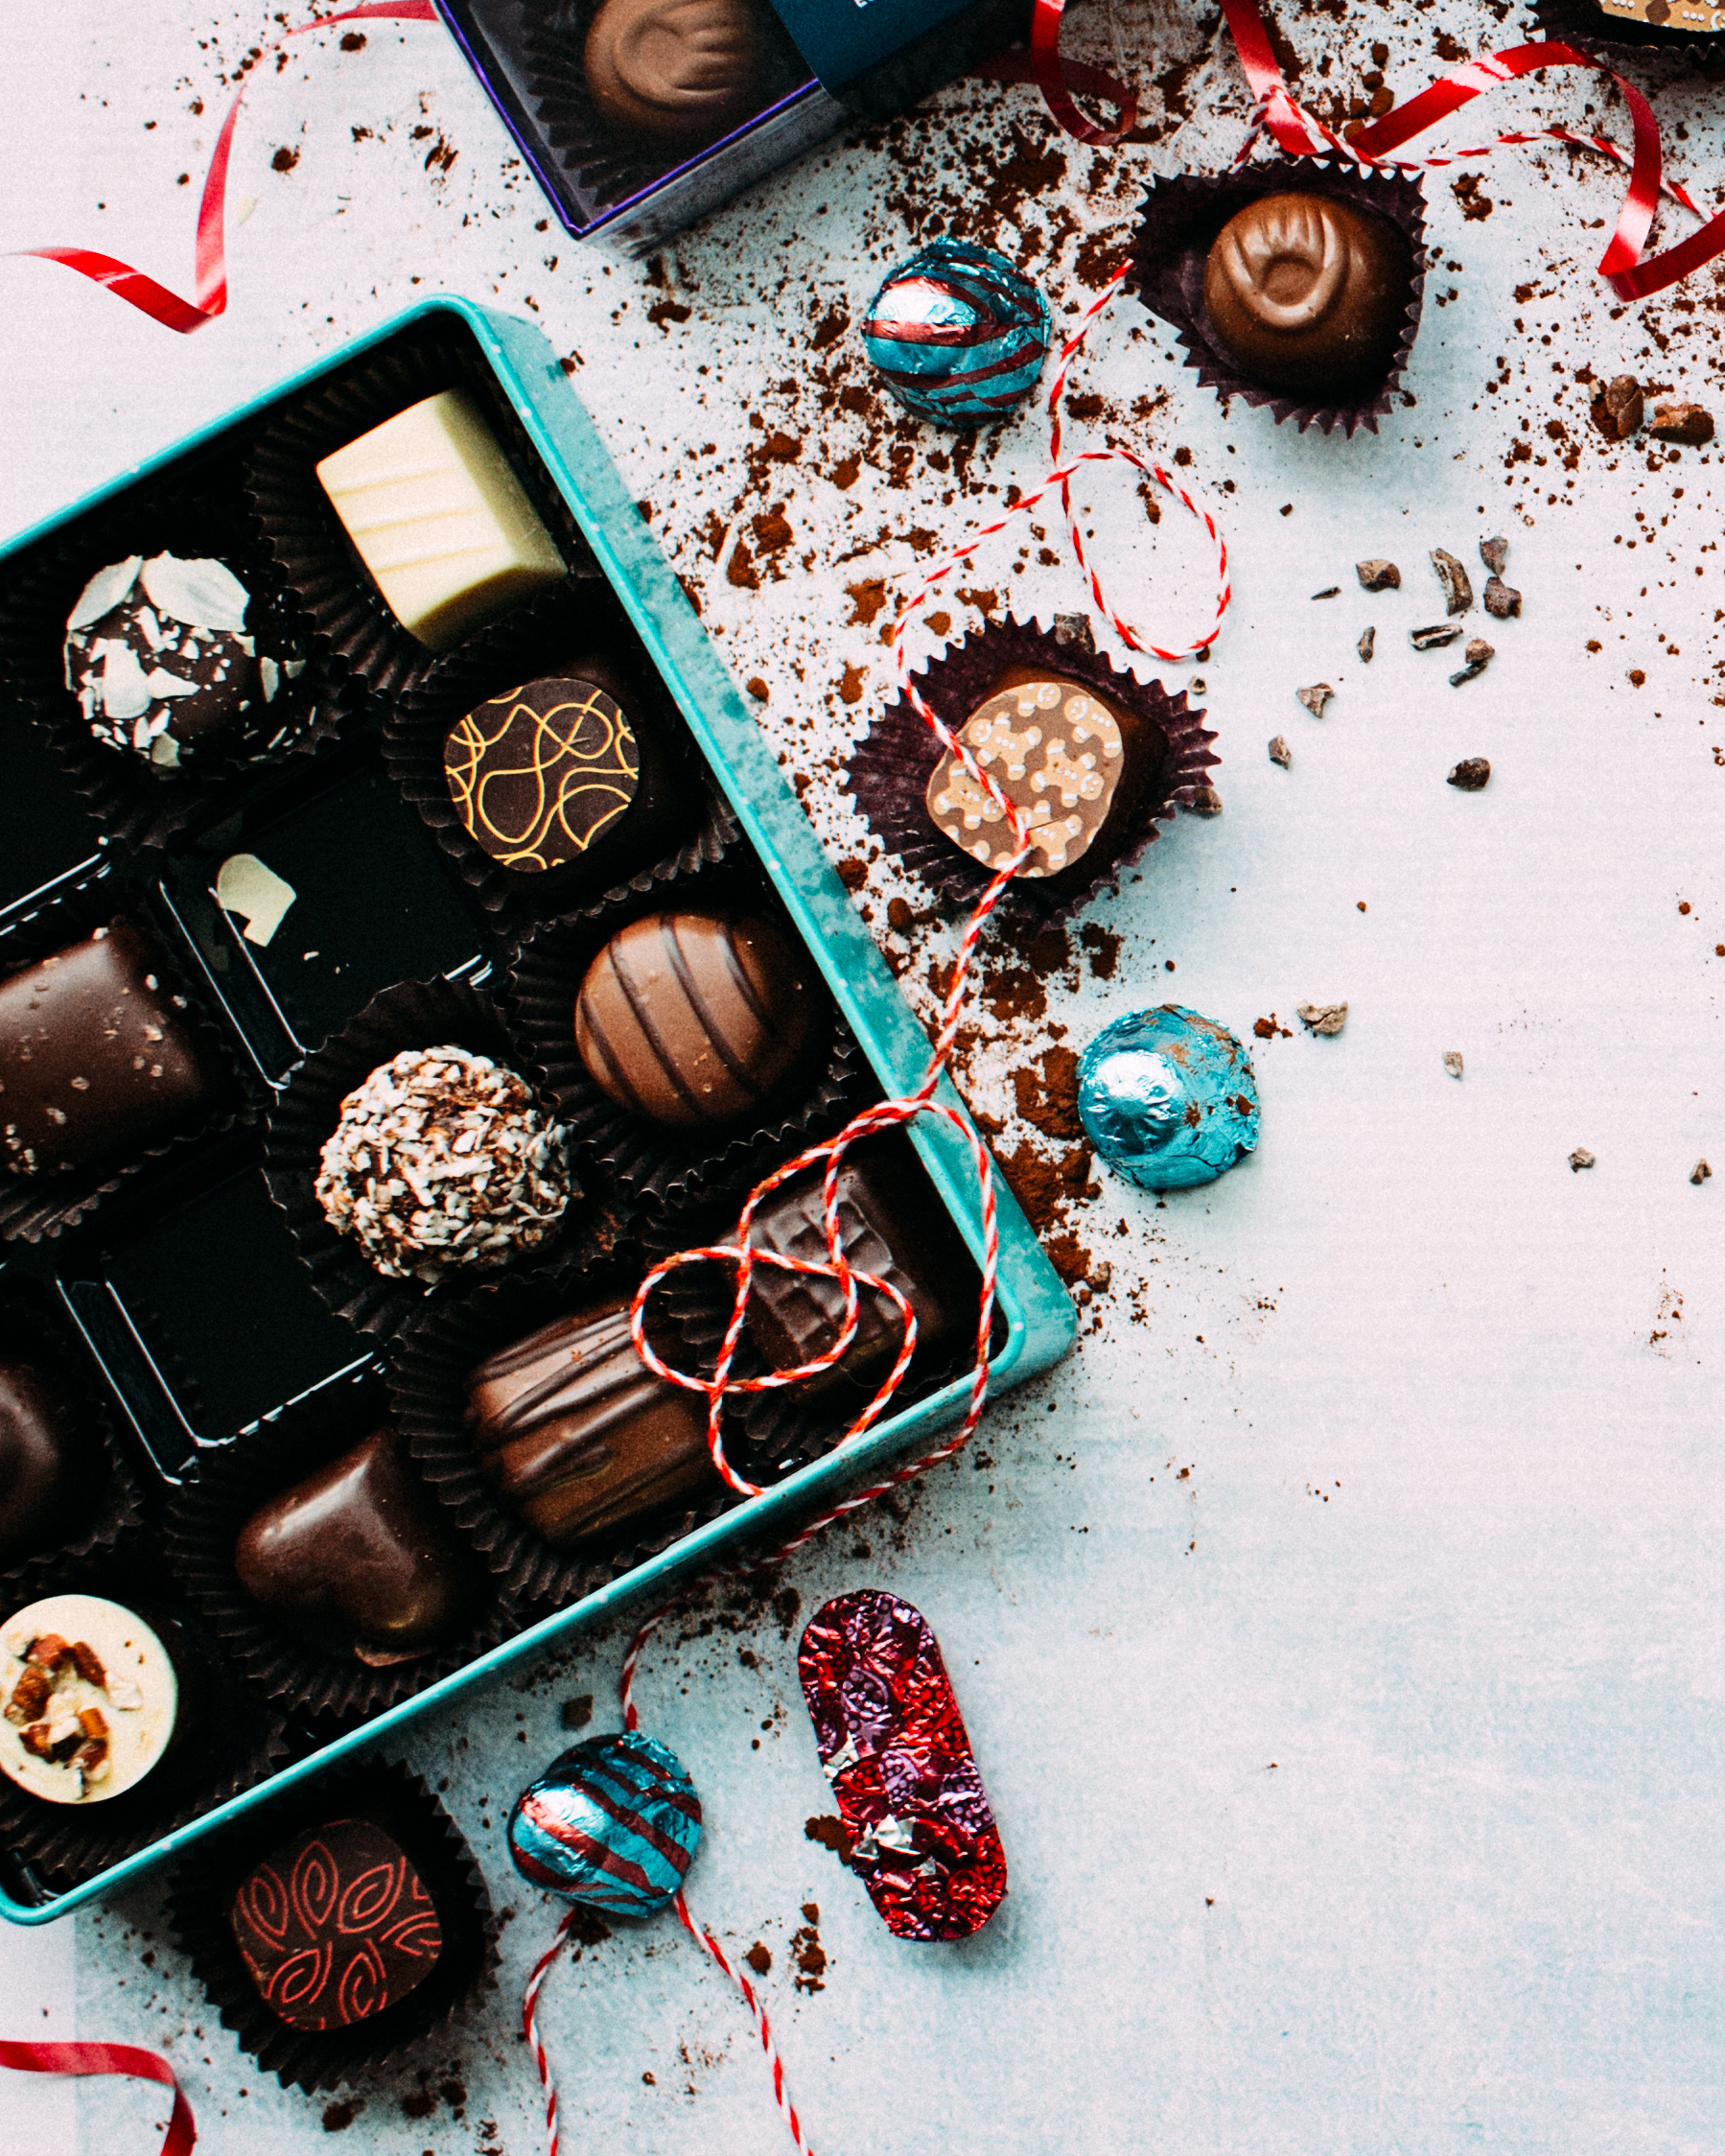 Have a chocoloholic friend? Surprise her or him with specialty goodies from a bougie sweet shop!